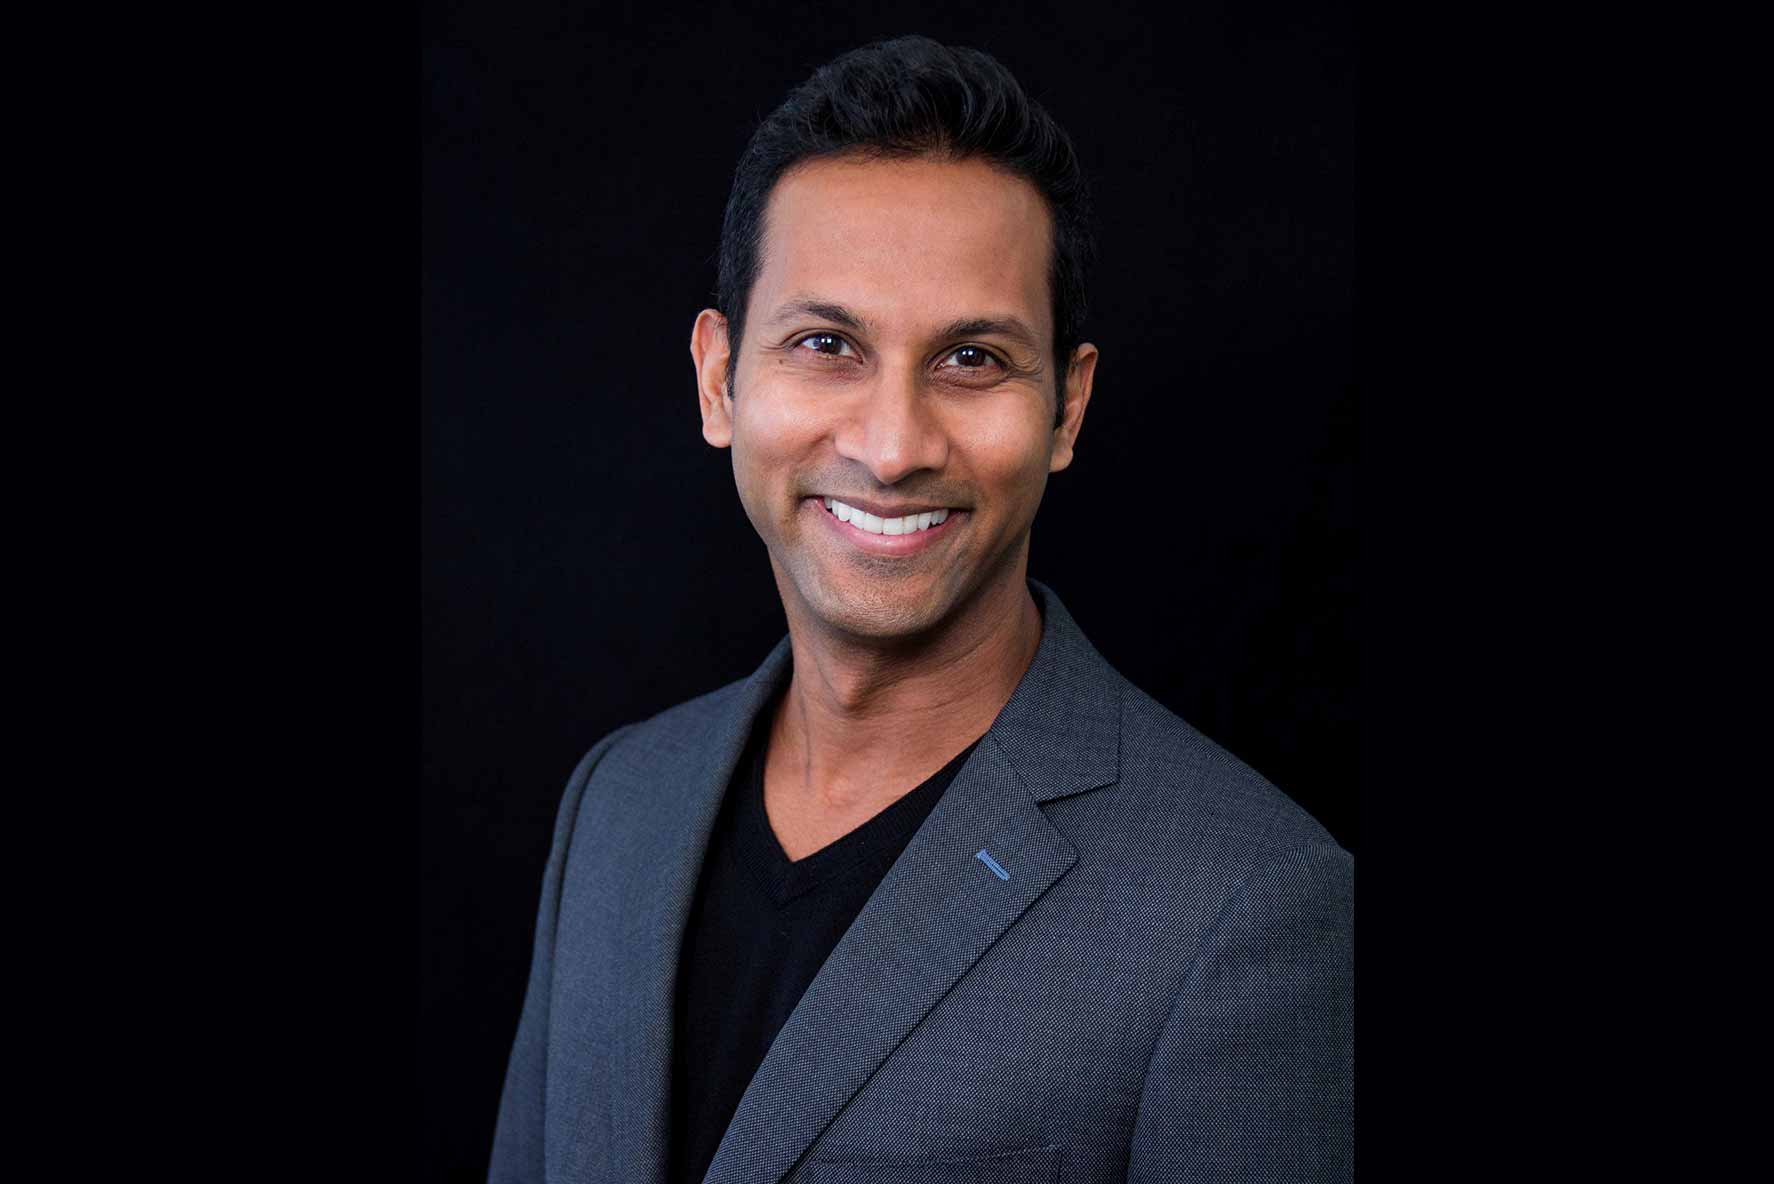 Austin Dentist | Austin Cosmetic Dentist | Tejas Patel | Cosmetic Dentistry | Restorative Dentistry | Preventive Dentistry | Invisalign | Veneers | Cavity & Tooth Decay | Dental Implants | Wisdom Tooth | Dentist | Dentist in Austin | Crown | Root Canal | Teeth Whitening